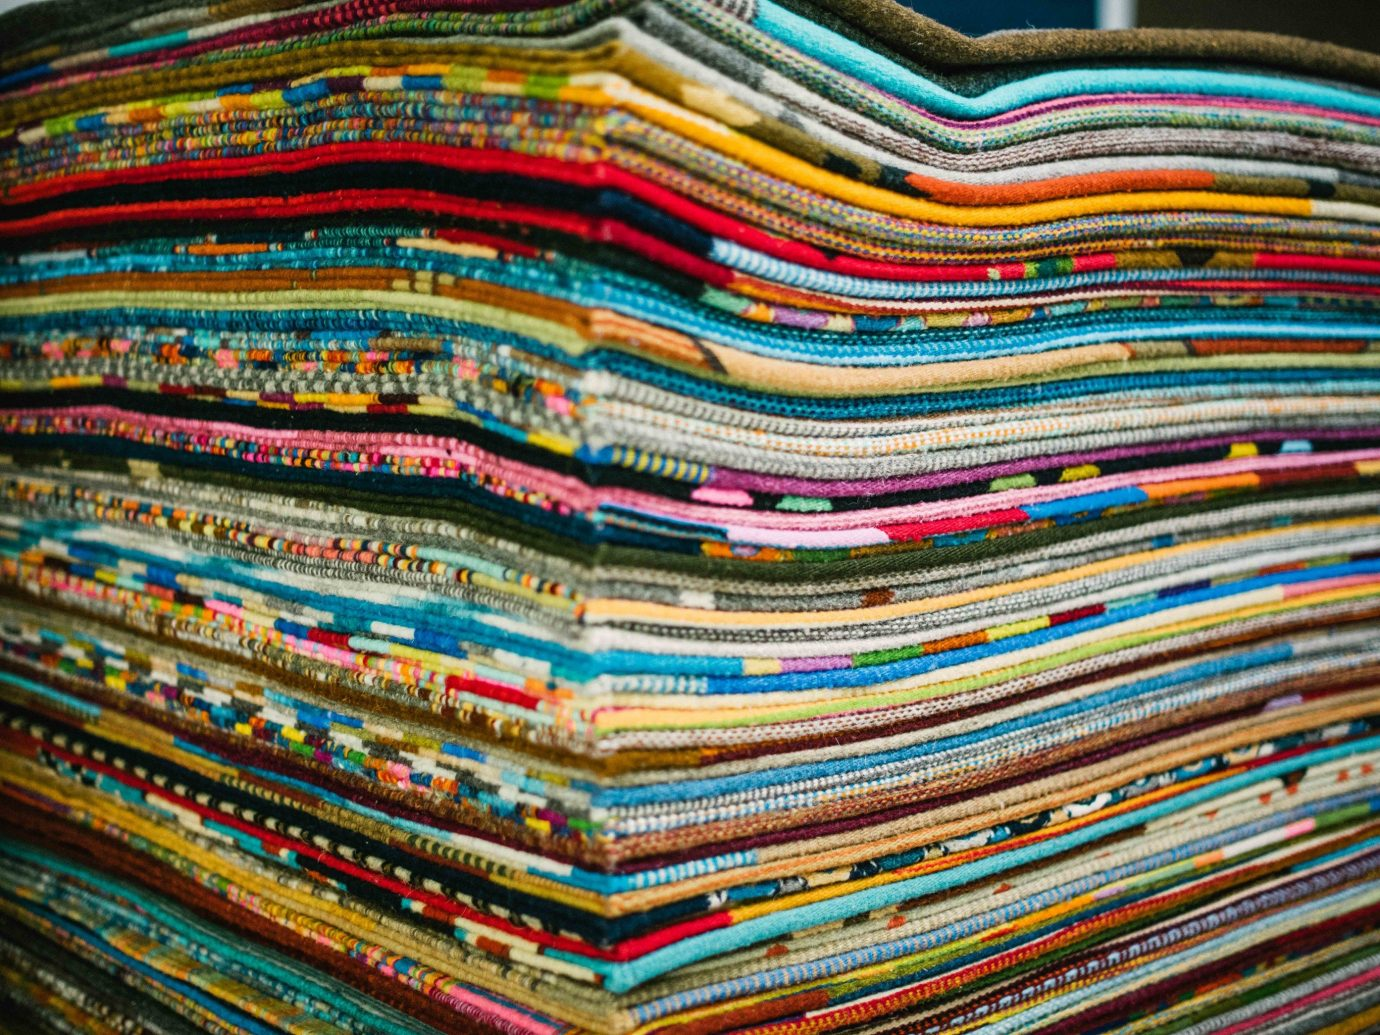 Arts + Culture Mexico Oaxaca Trip Ideas textile thread material colorful pattern stack colored